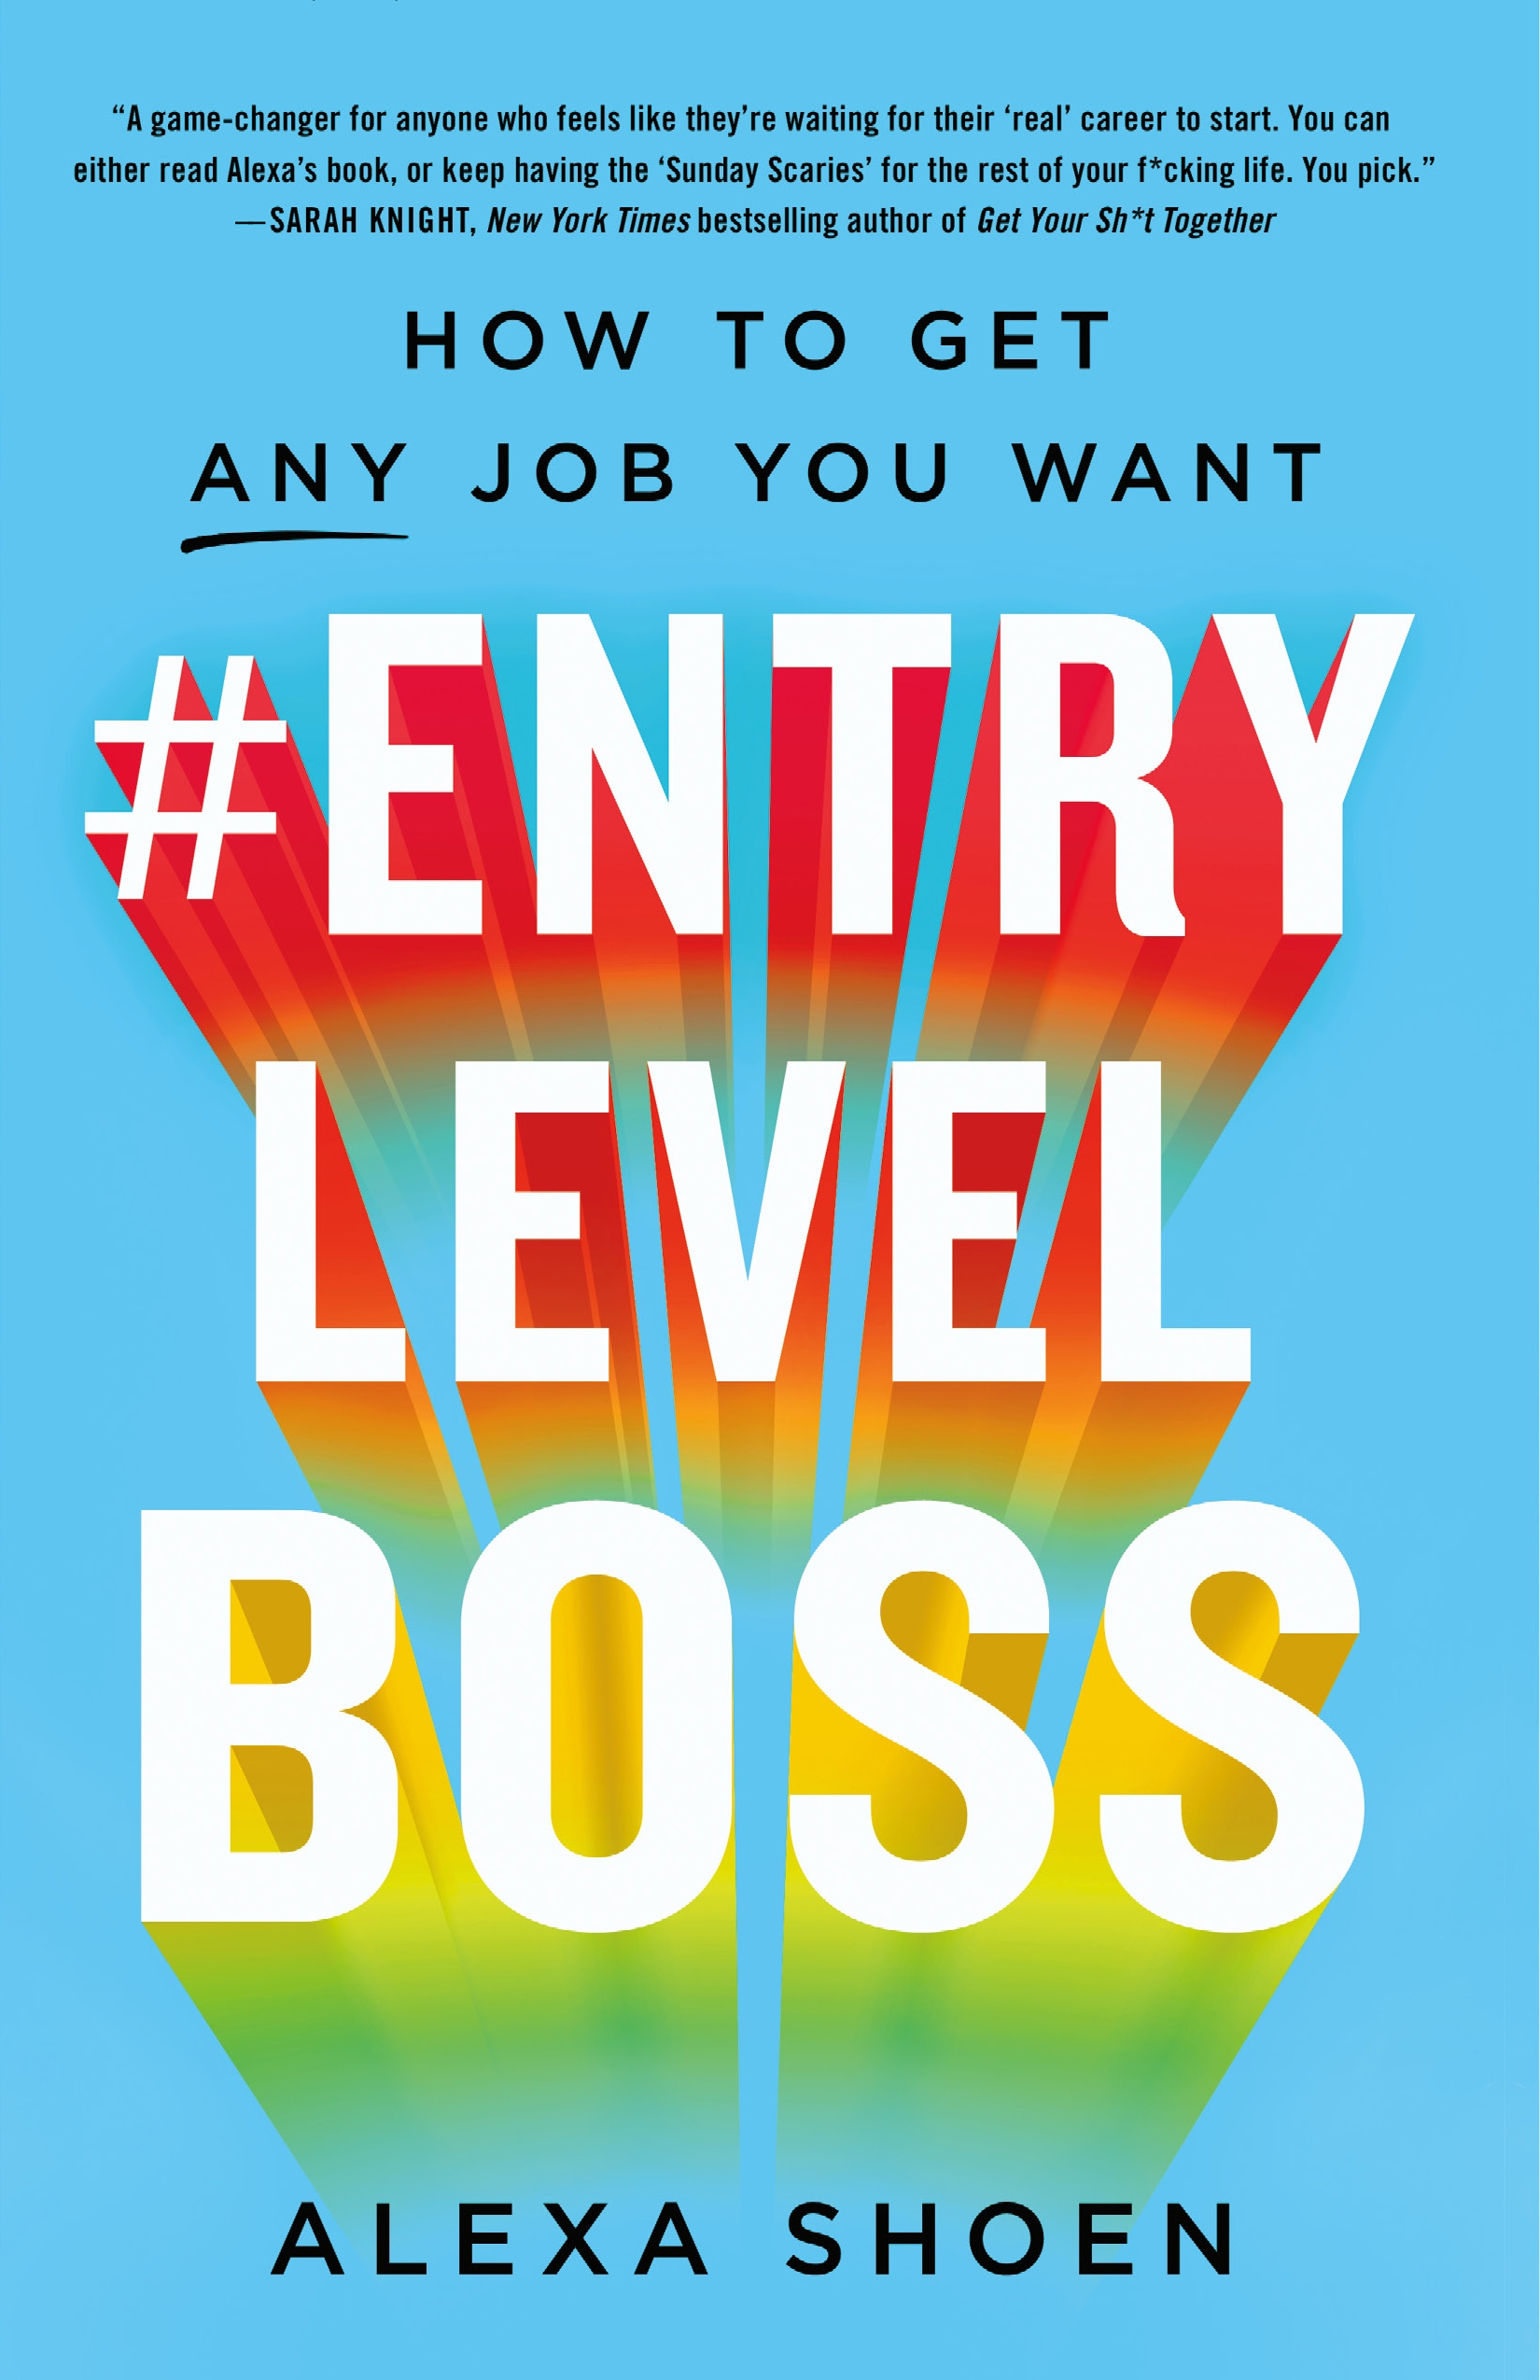 #ENTRYLEVELBOSS How to Get Any Job You Want